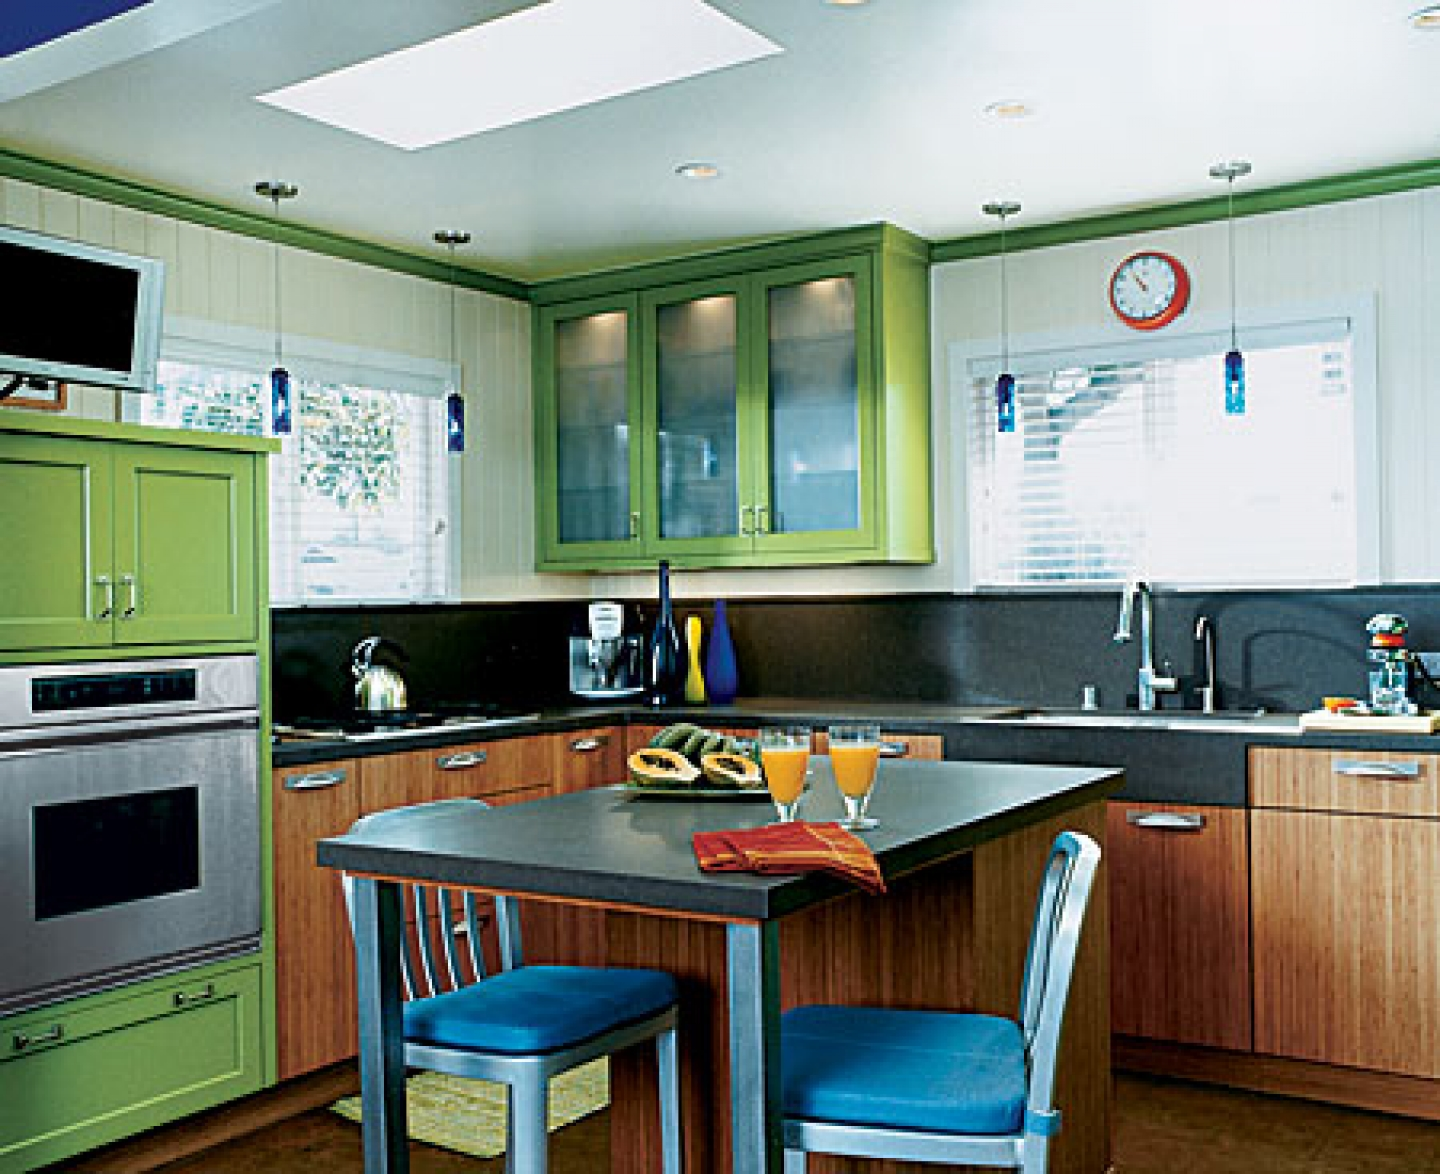 Small efficient kitchens large and beautiful photos for Efficient small kitchen design